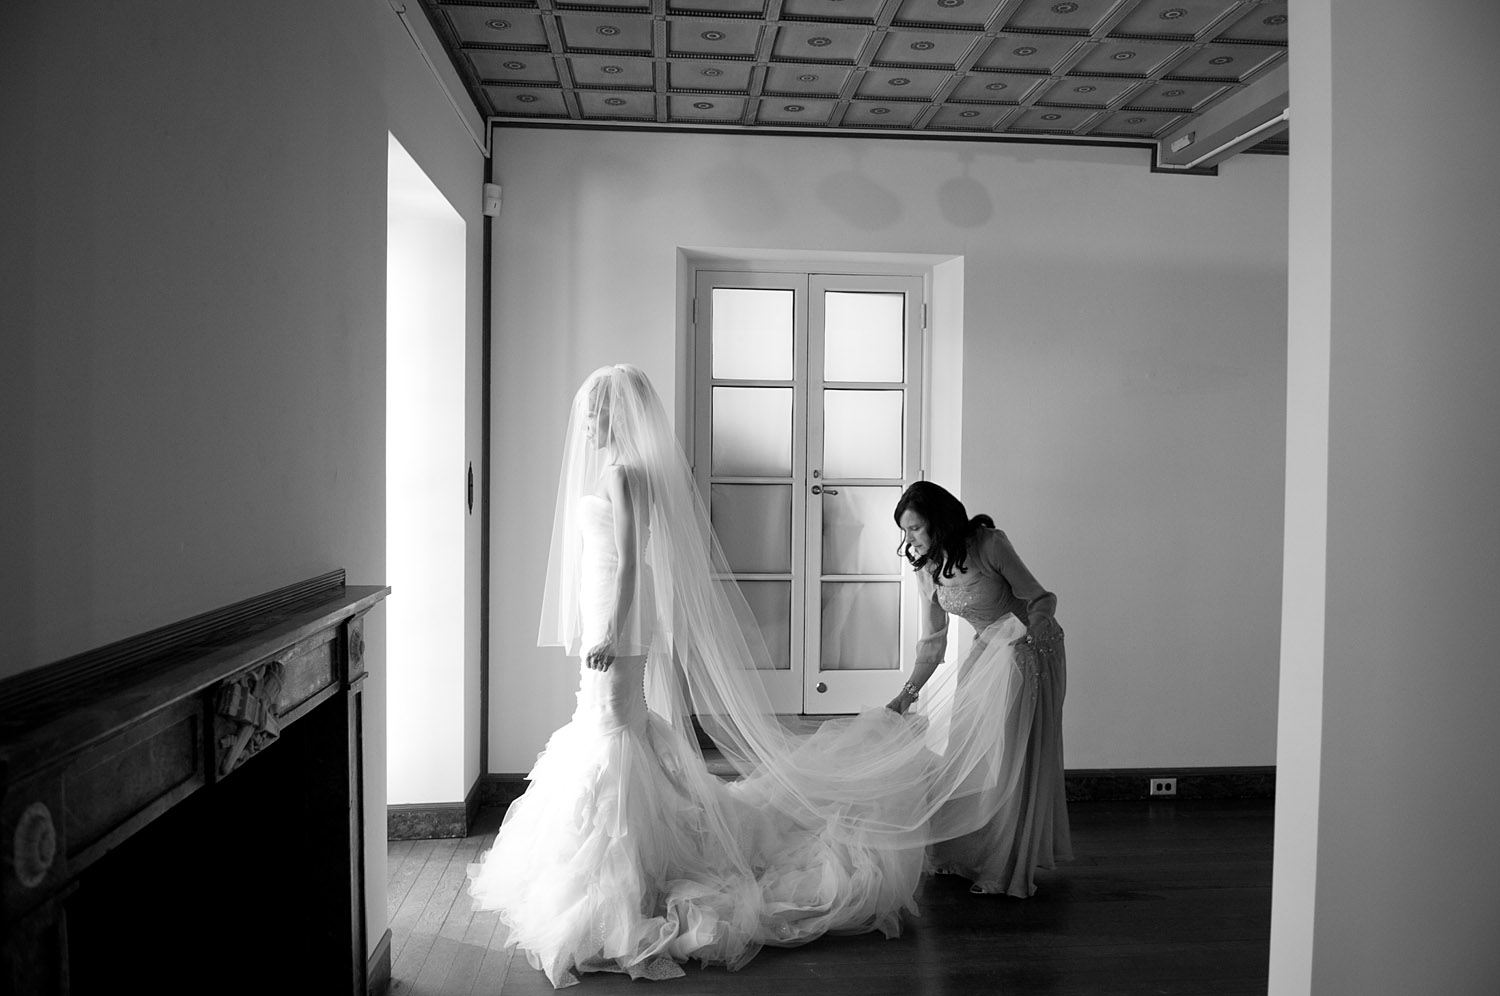 the mother of the bride puts the veil on the bride at this Italian Villa wedding at the Villa Terrace Wedding photographed by destination wedding photographer, lexia frank, who shot the entire wedding on film